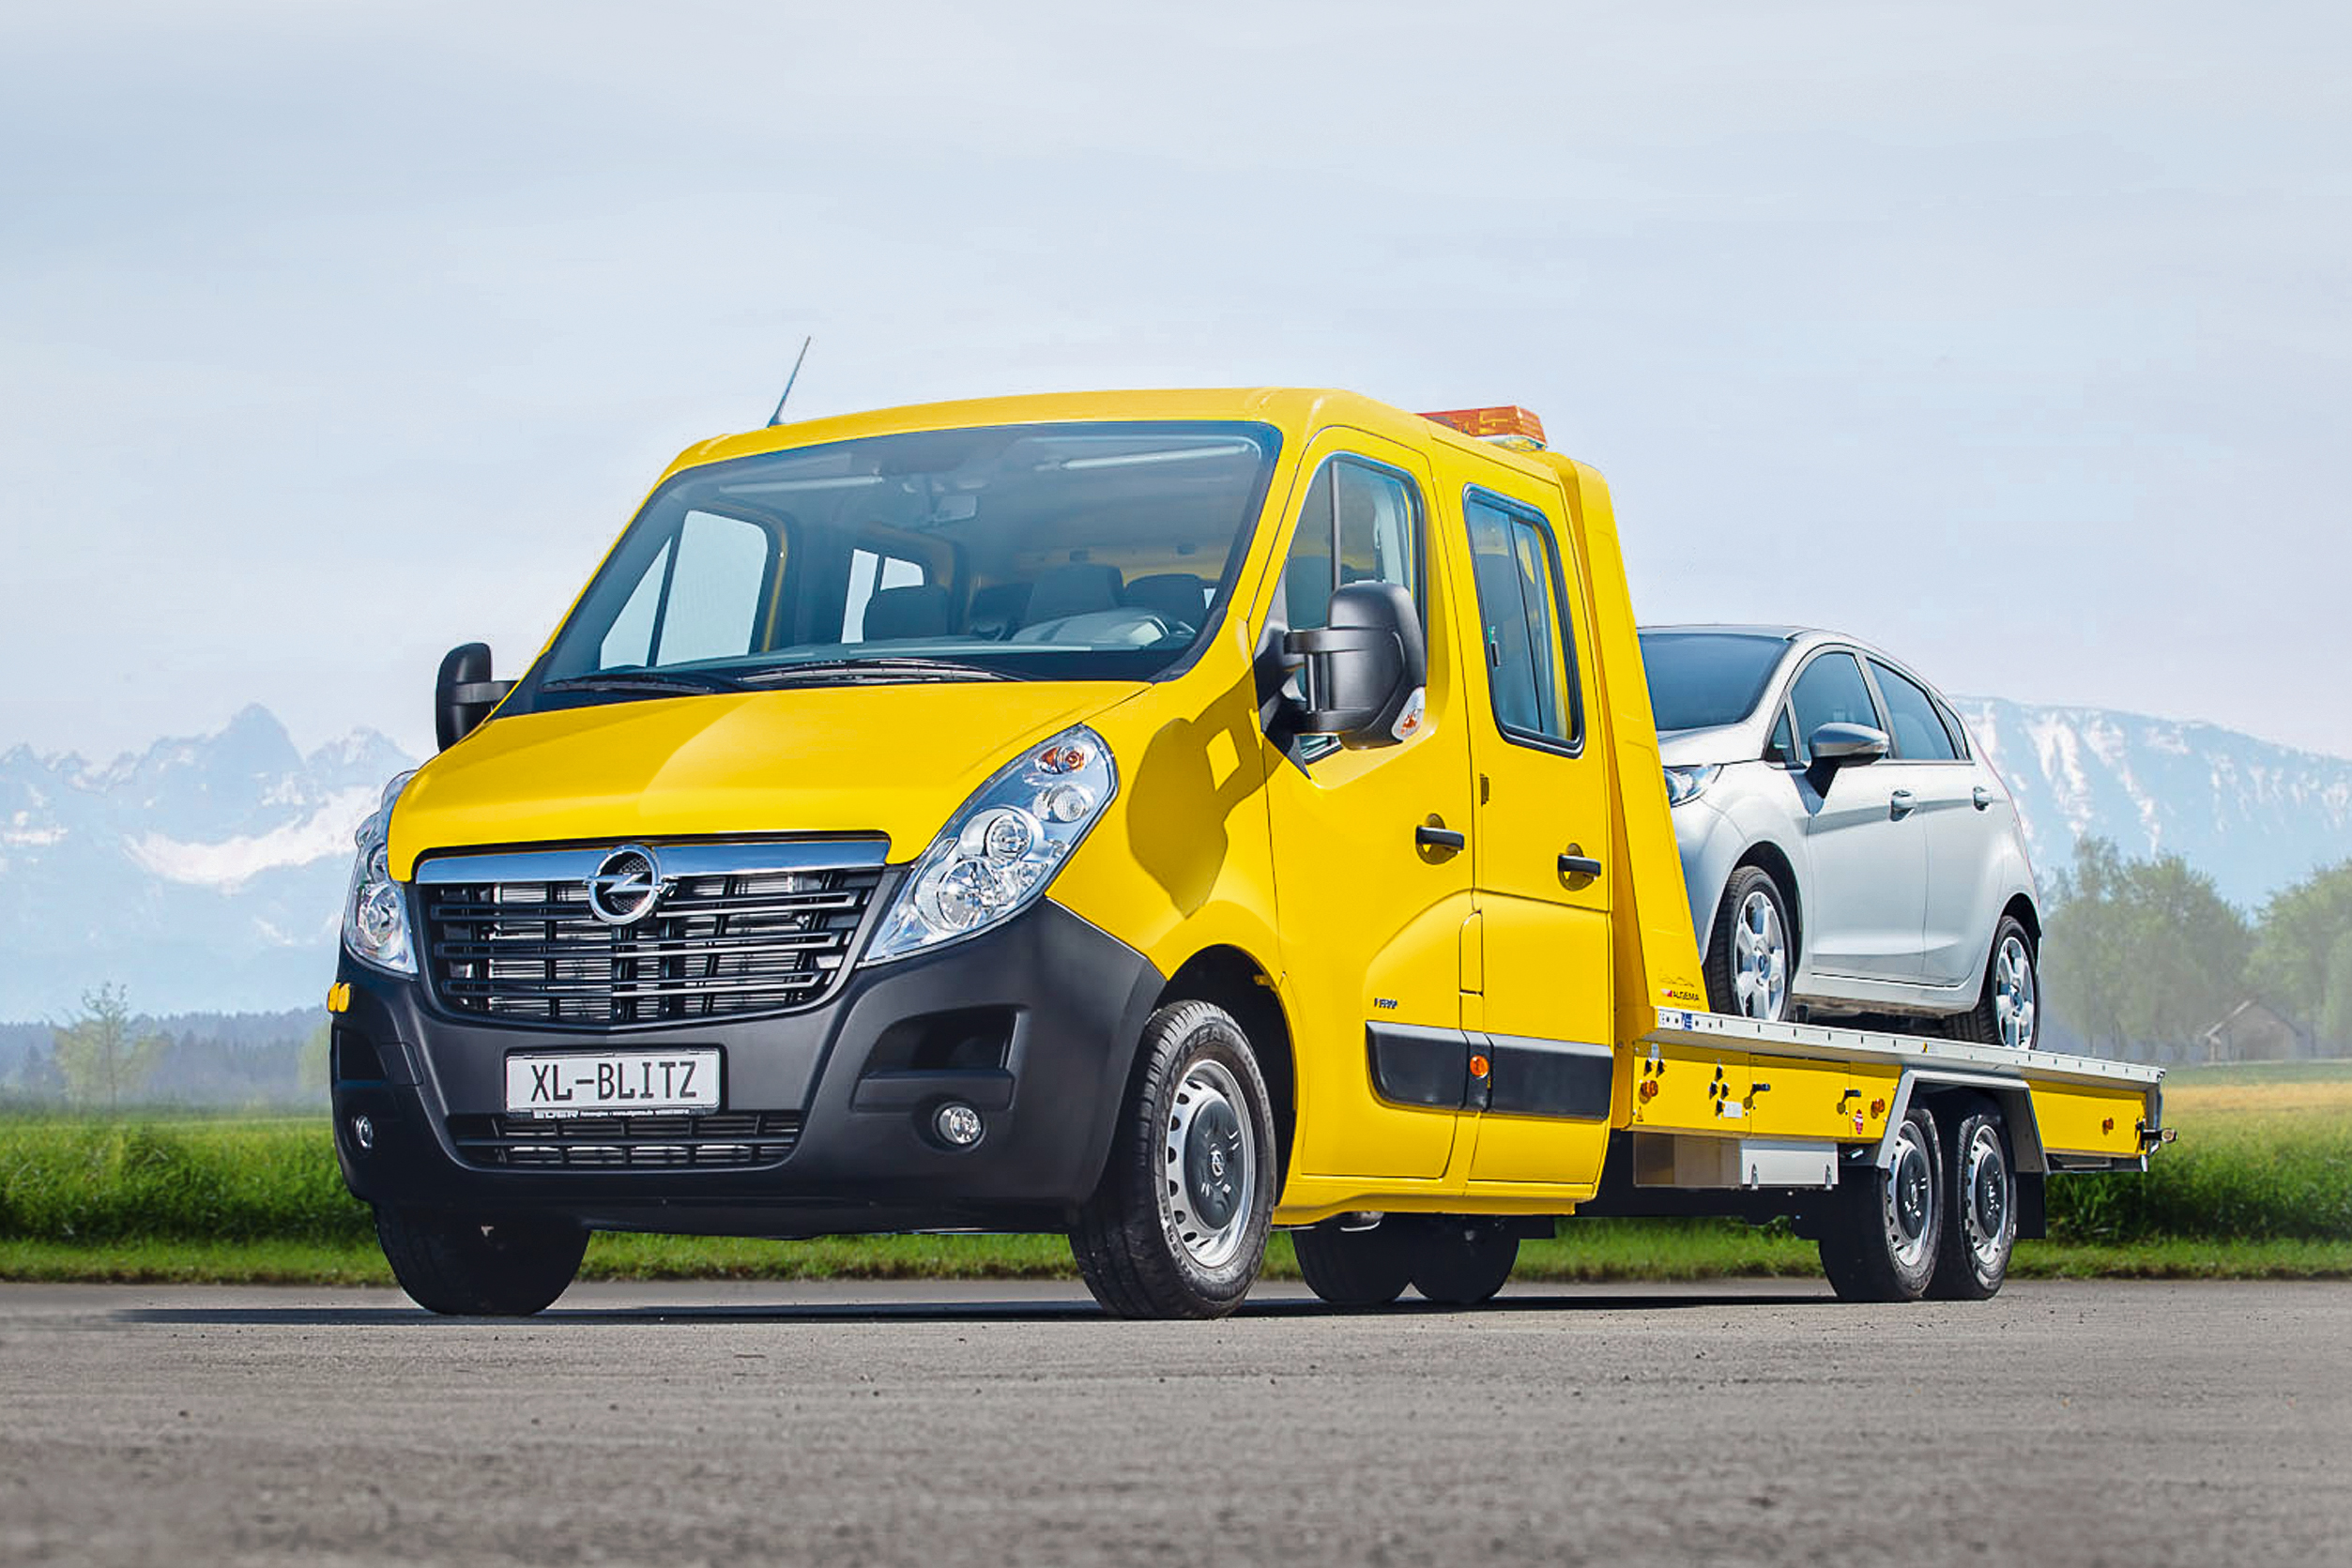 Certified conversion: Algema Blitzlader car transporter based on an Opel Movano.